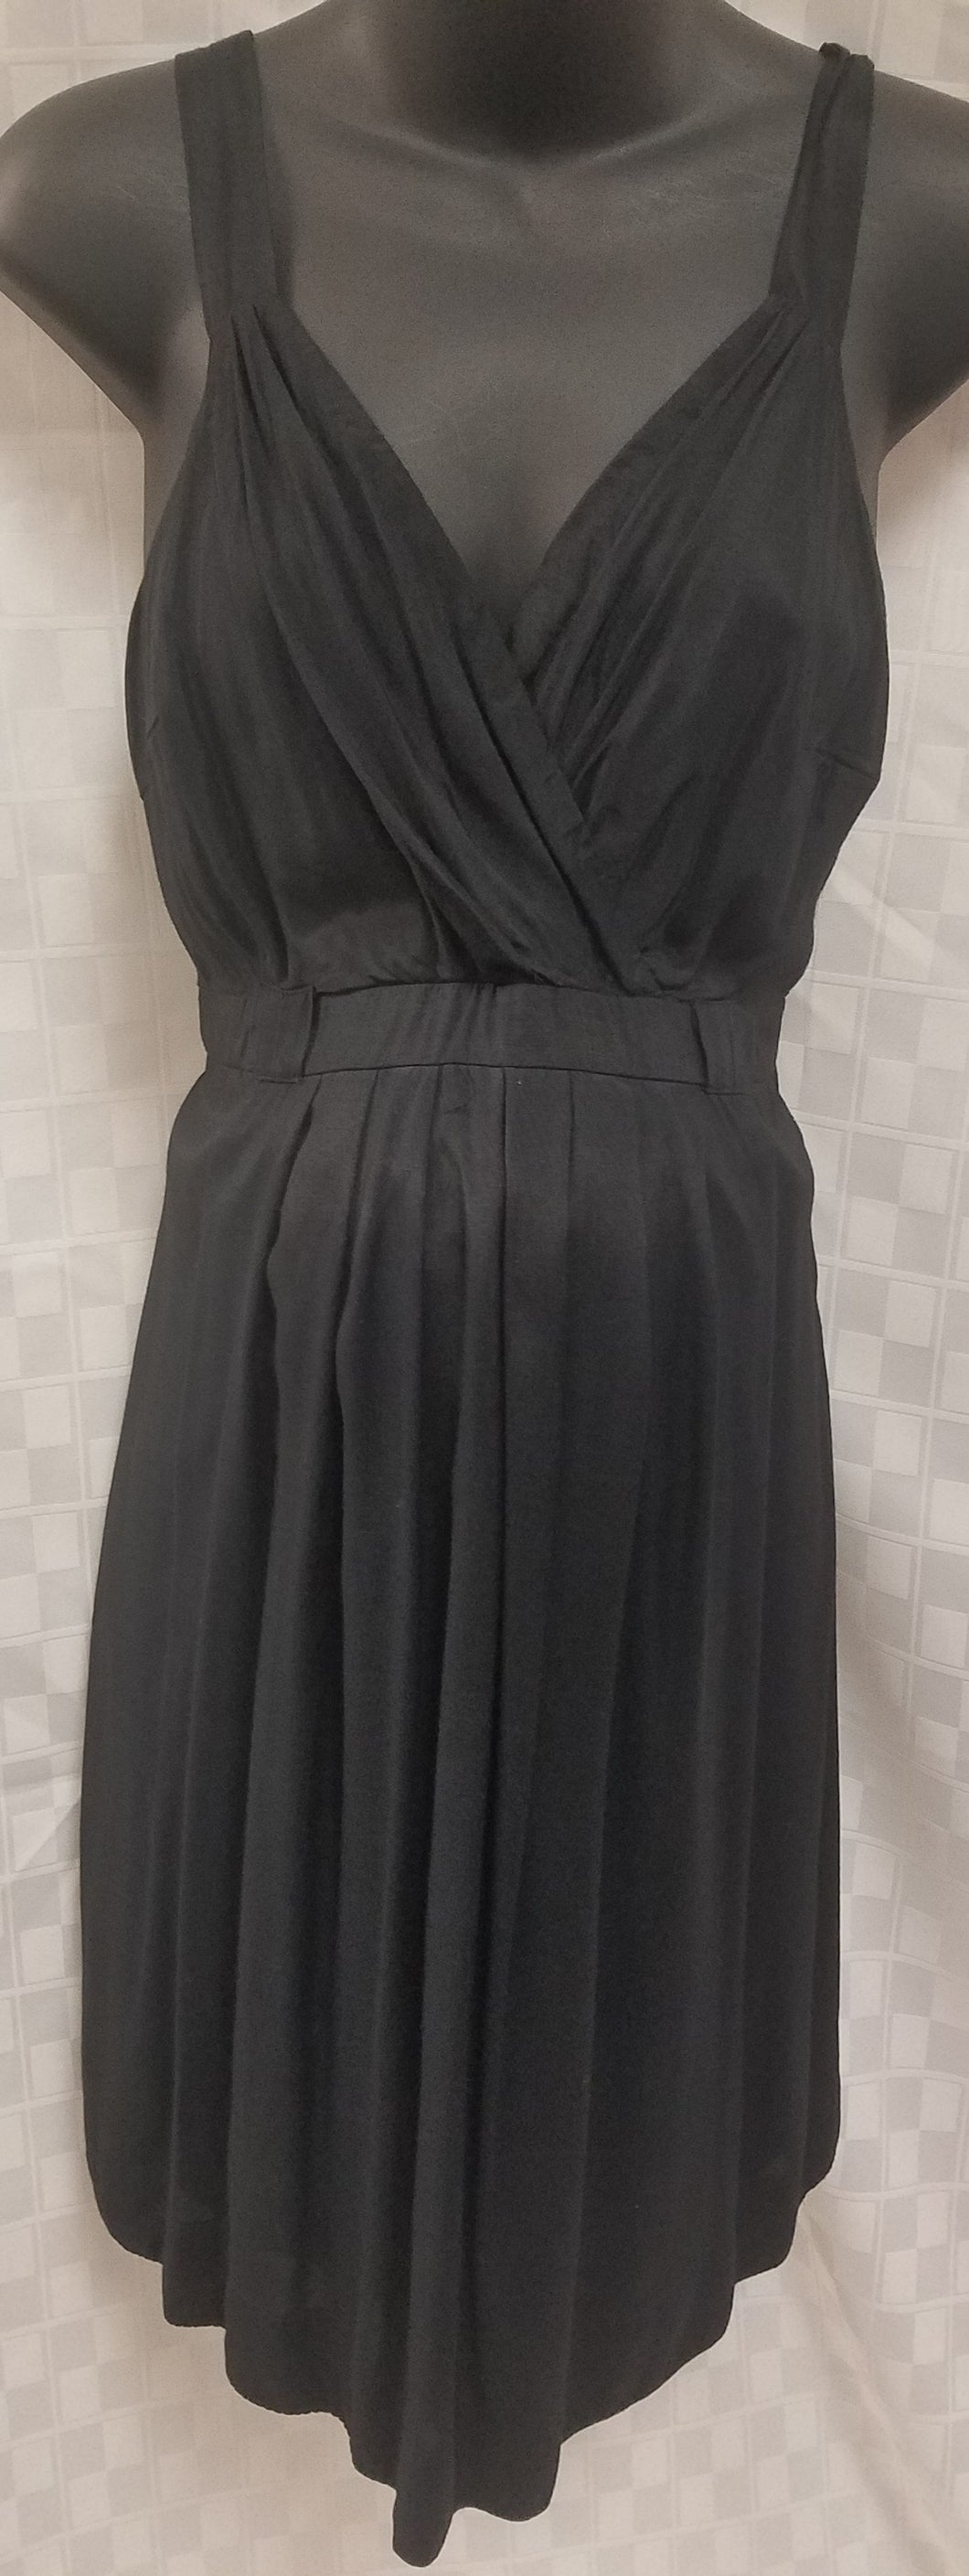 Large Black Pleated Cross Over Maternity/Nursing Friendly Dress